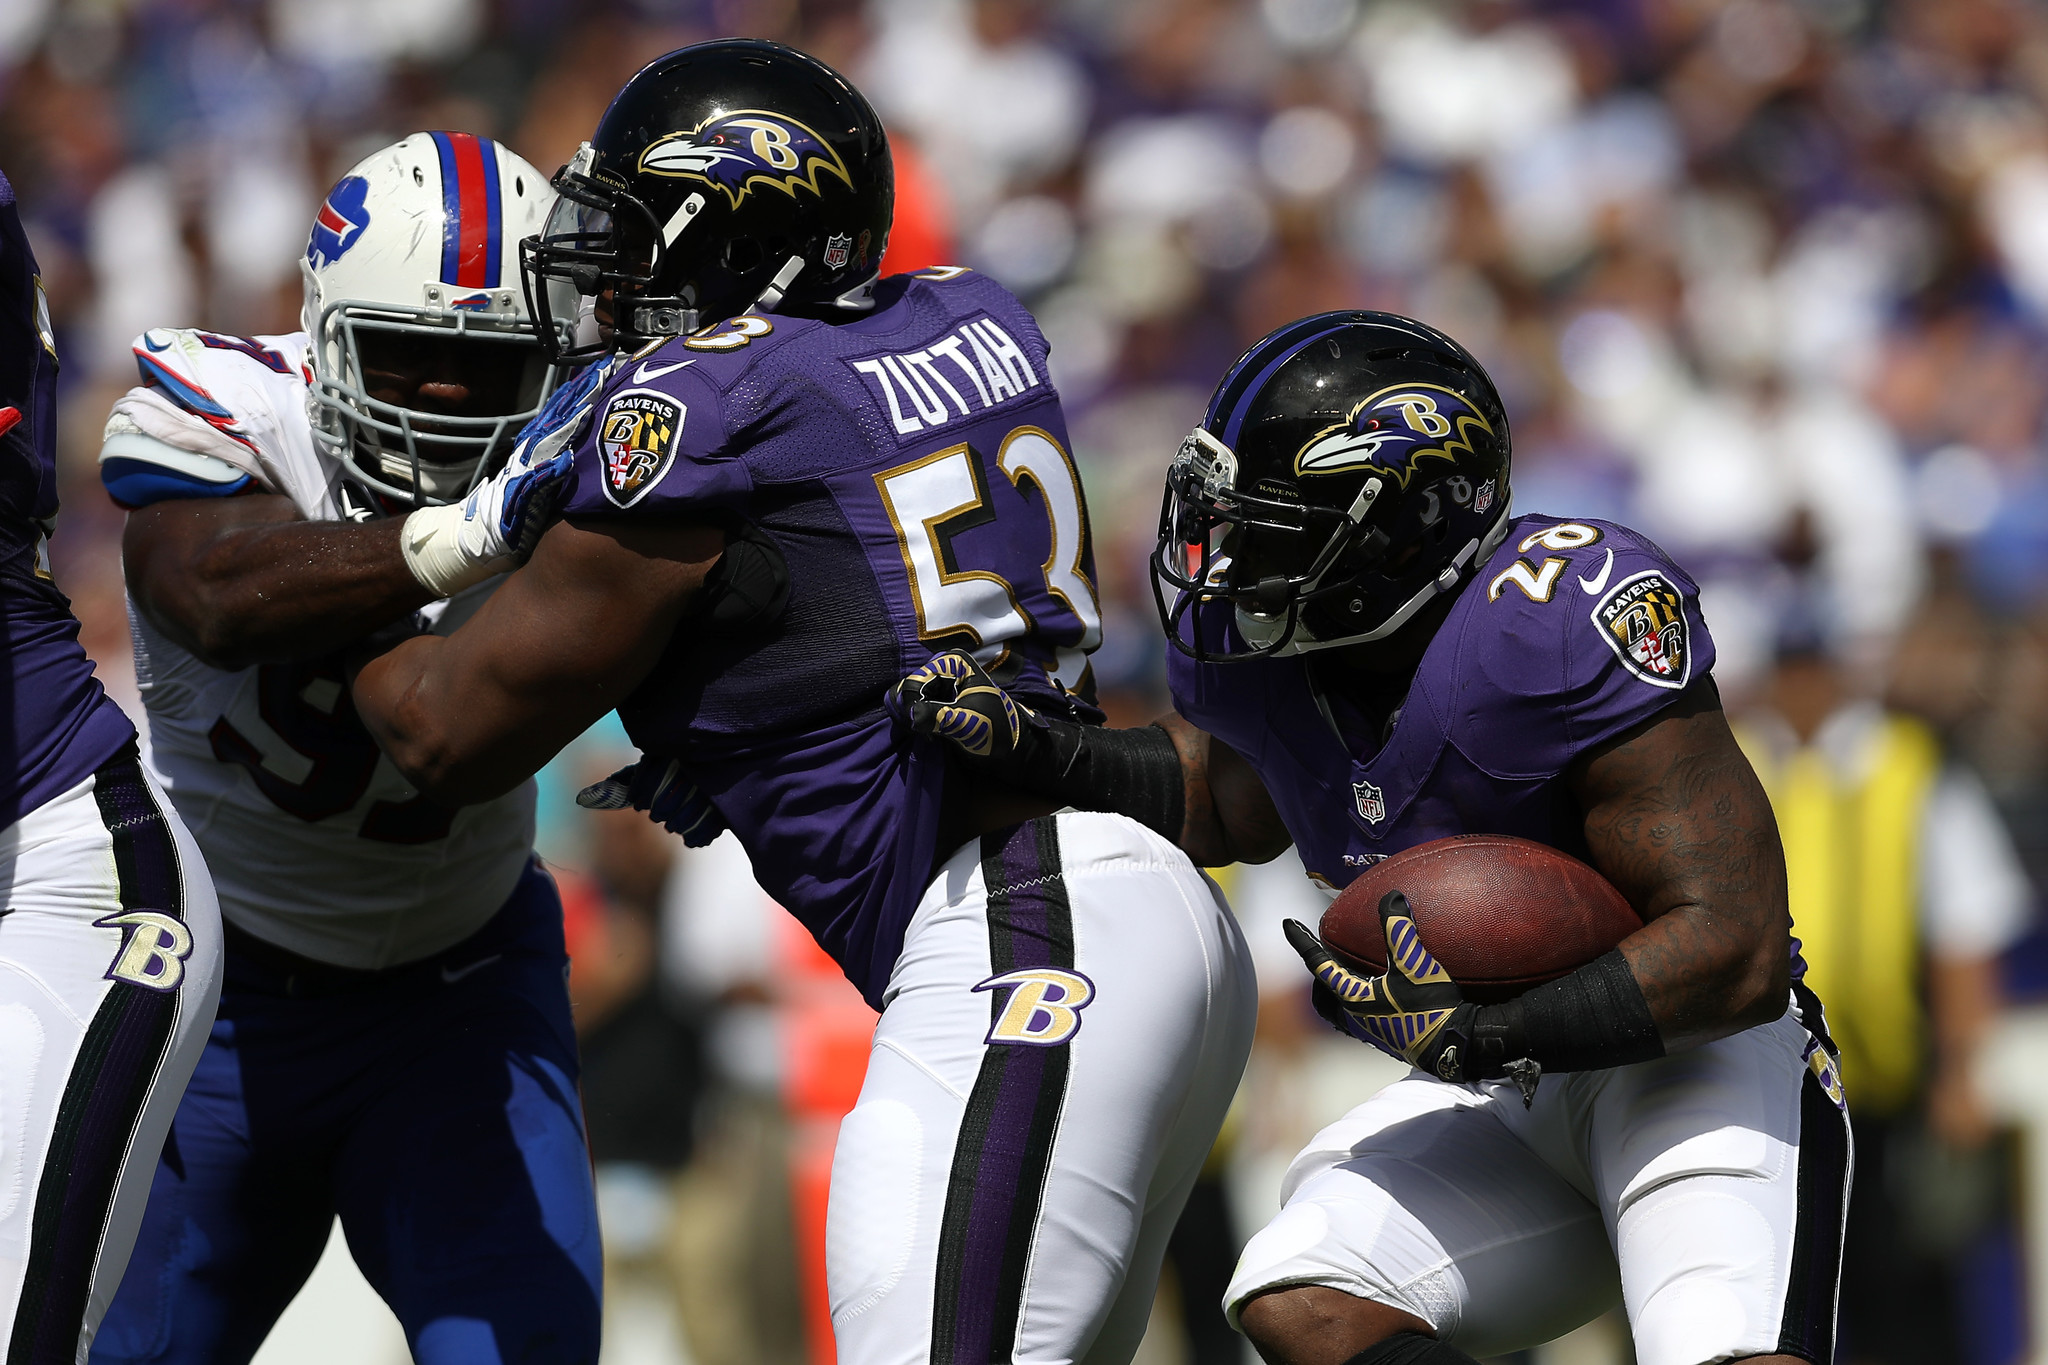 Bal-ravens-running-back-terrance-west-expecting-to-be-booed-in-return-to-cleveland-on-sunday-20160914